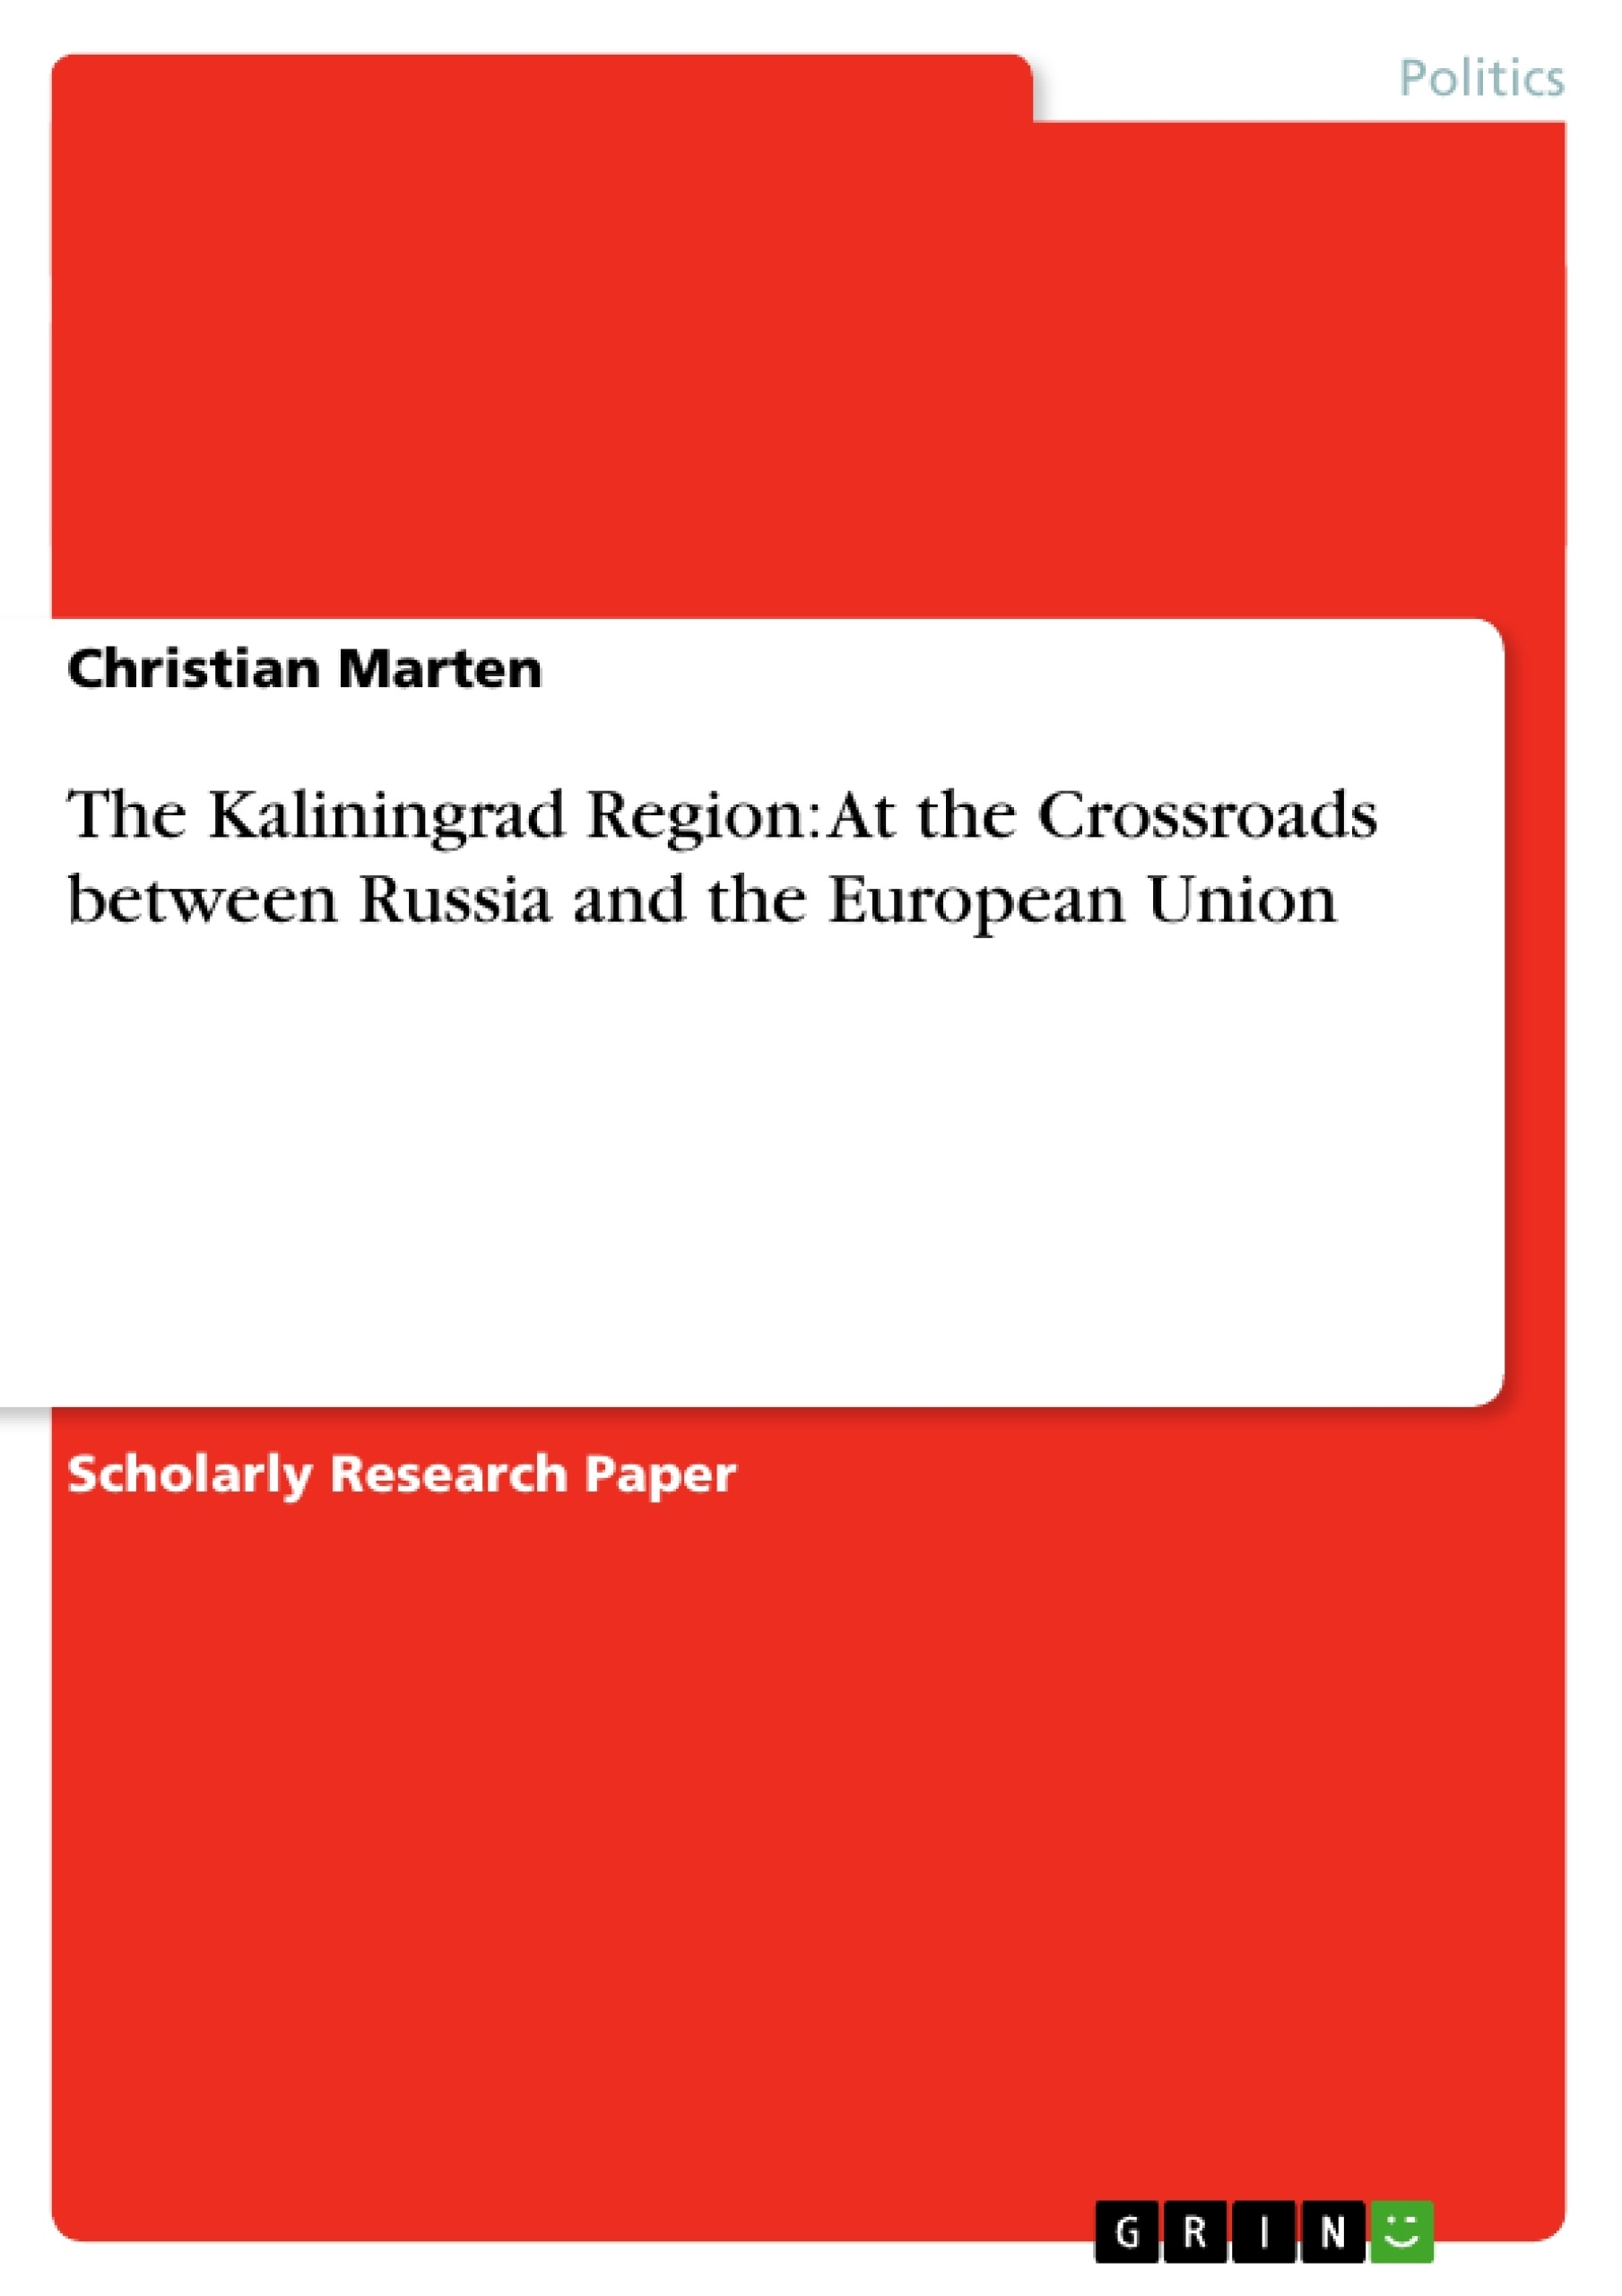 Title: The Kaliningrad Region: At the Crossroads between Russia and the European Union